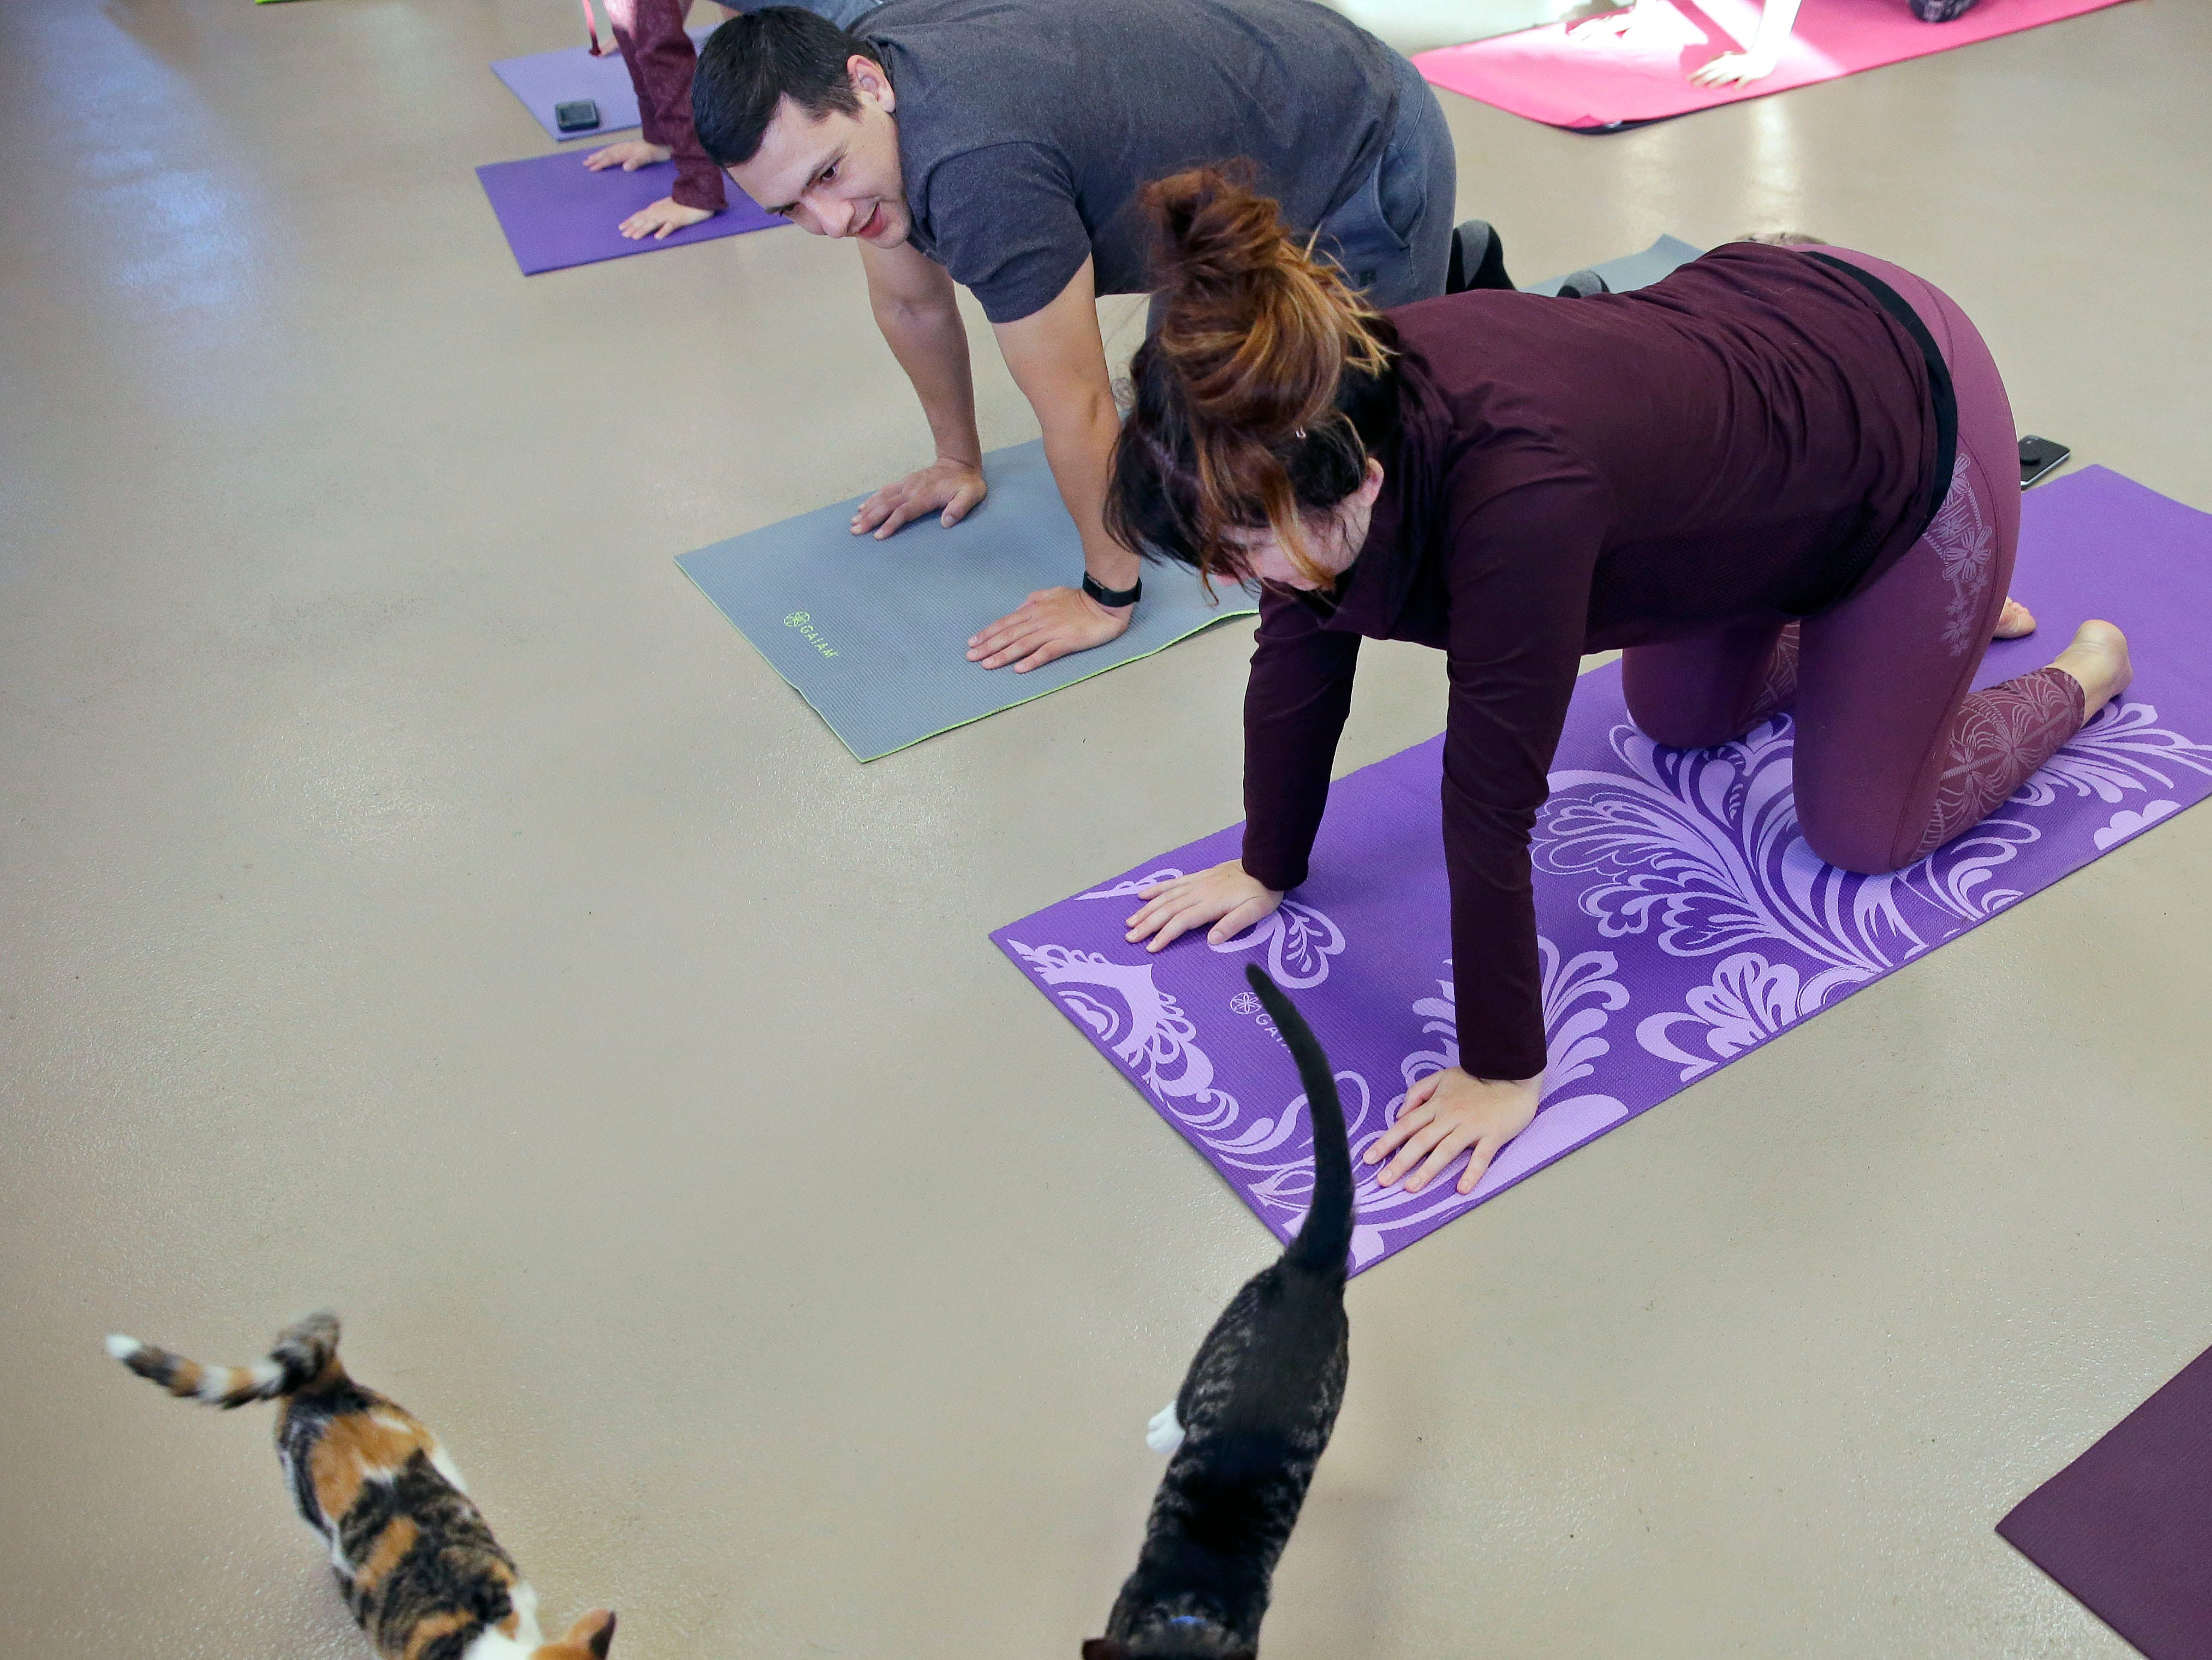 Brice and Lindsey Trickey take part in class while kittens wander by as the Fox Valley Humane Association and Grace Under Fire Yoga bring together adoptable kittens and yoga class for Kitten Yoga on Saturday, Oct. 13, 2018, at the Fox Valley Humane Association in Appleton, Wis.